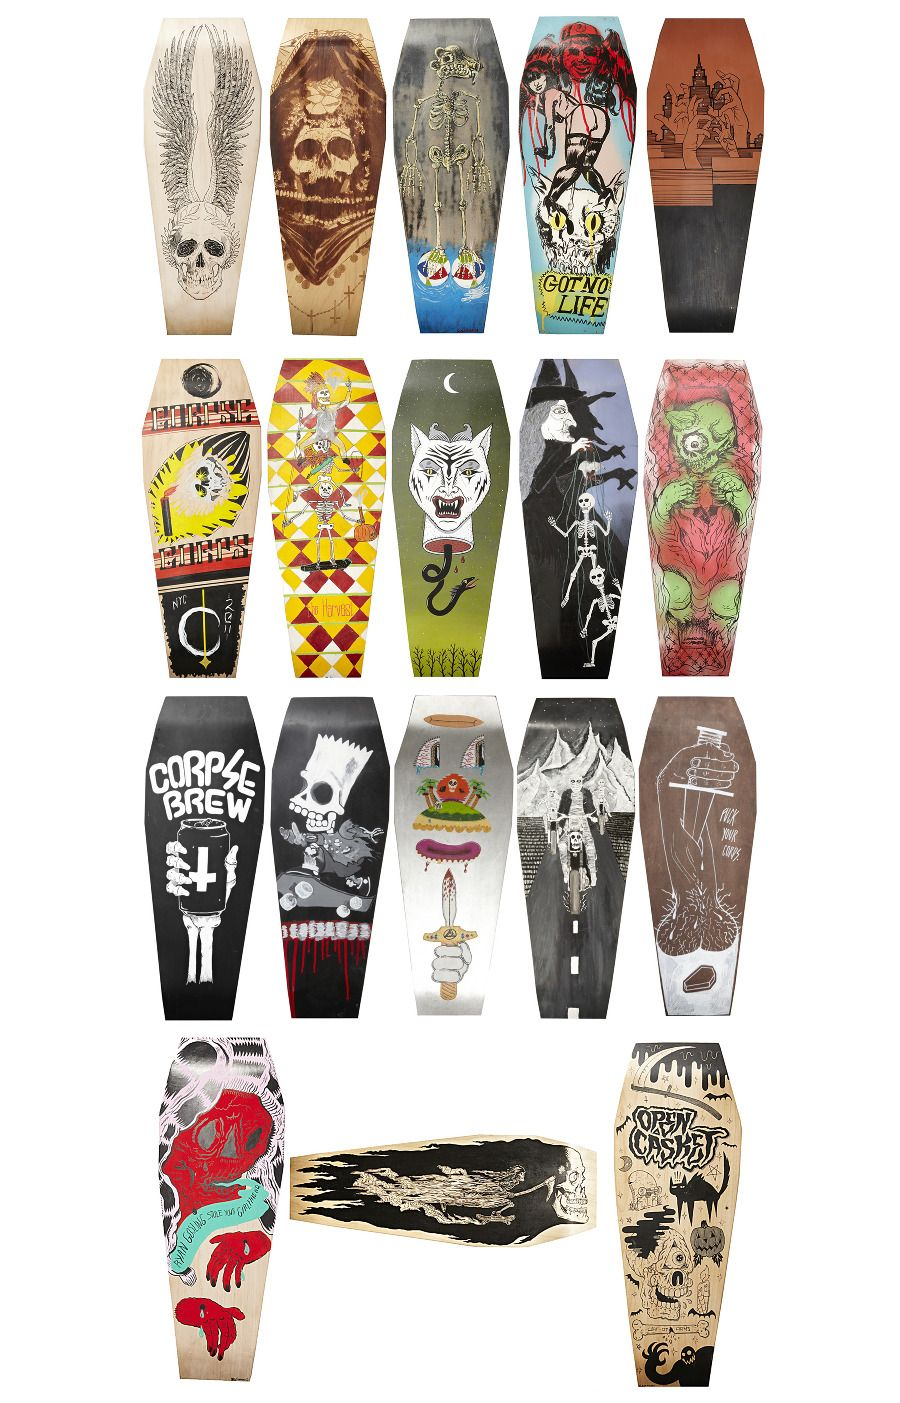 Corpse Corps Skateboards. Coffin skateboards? Frick yeah